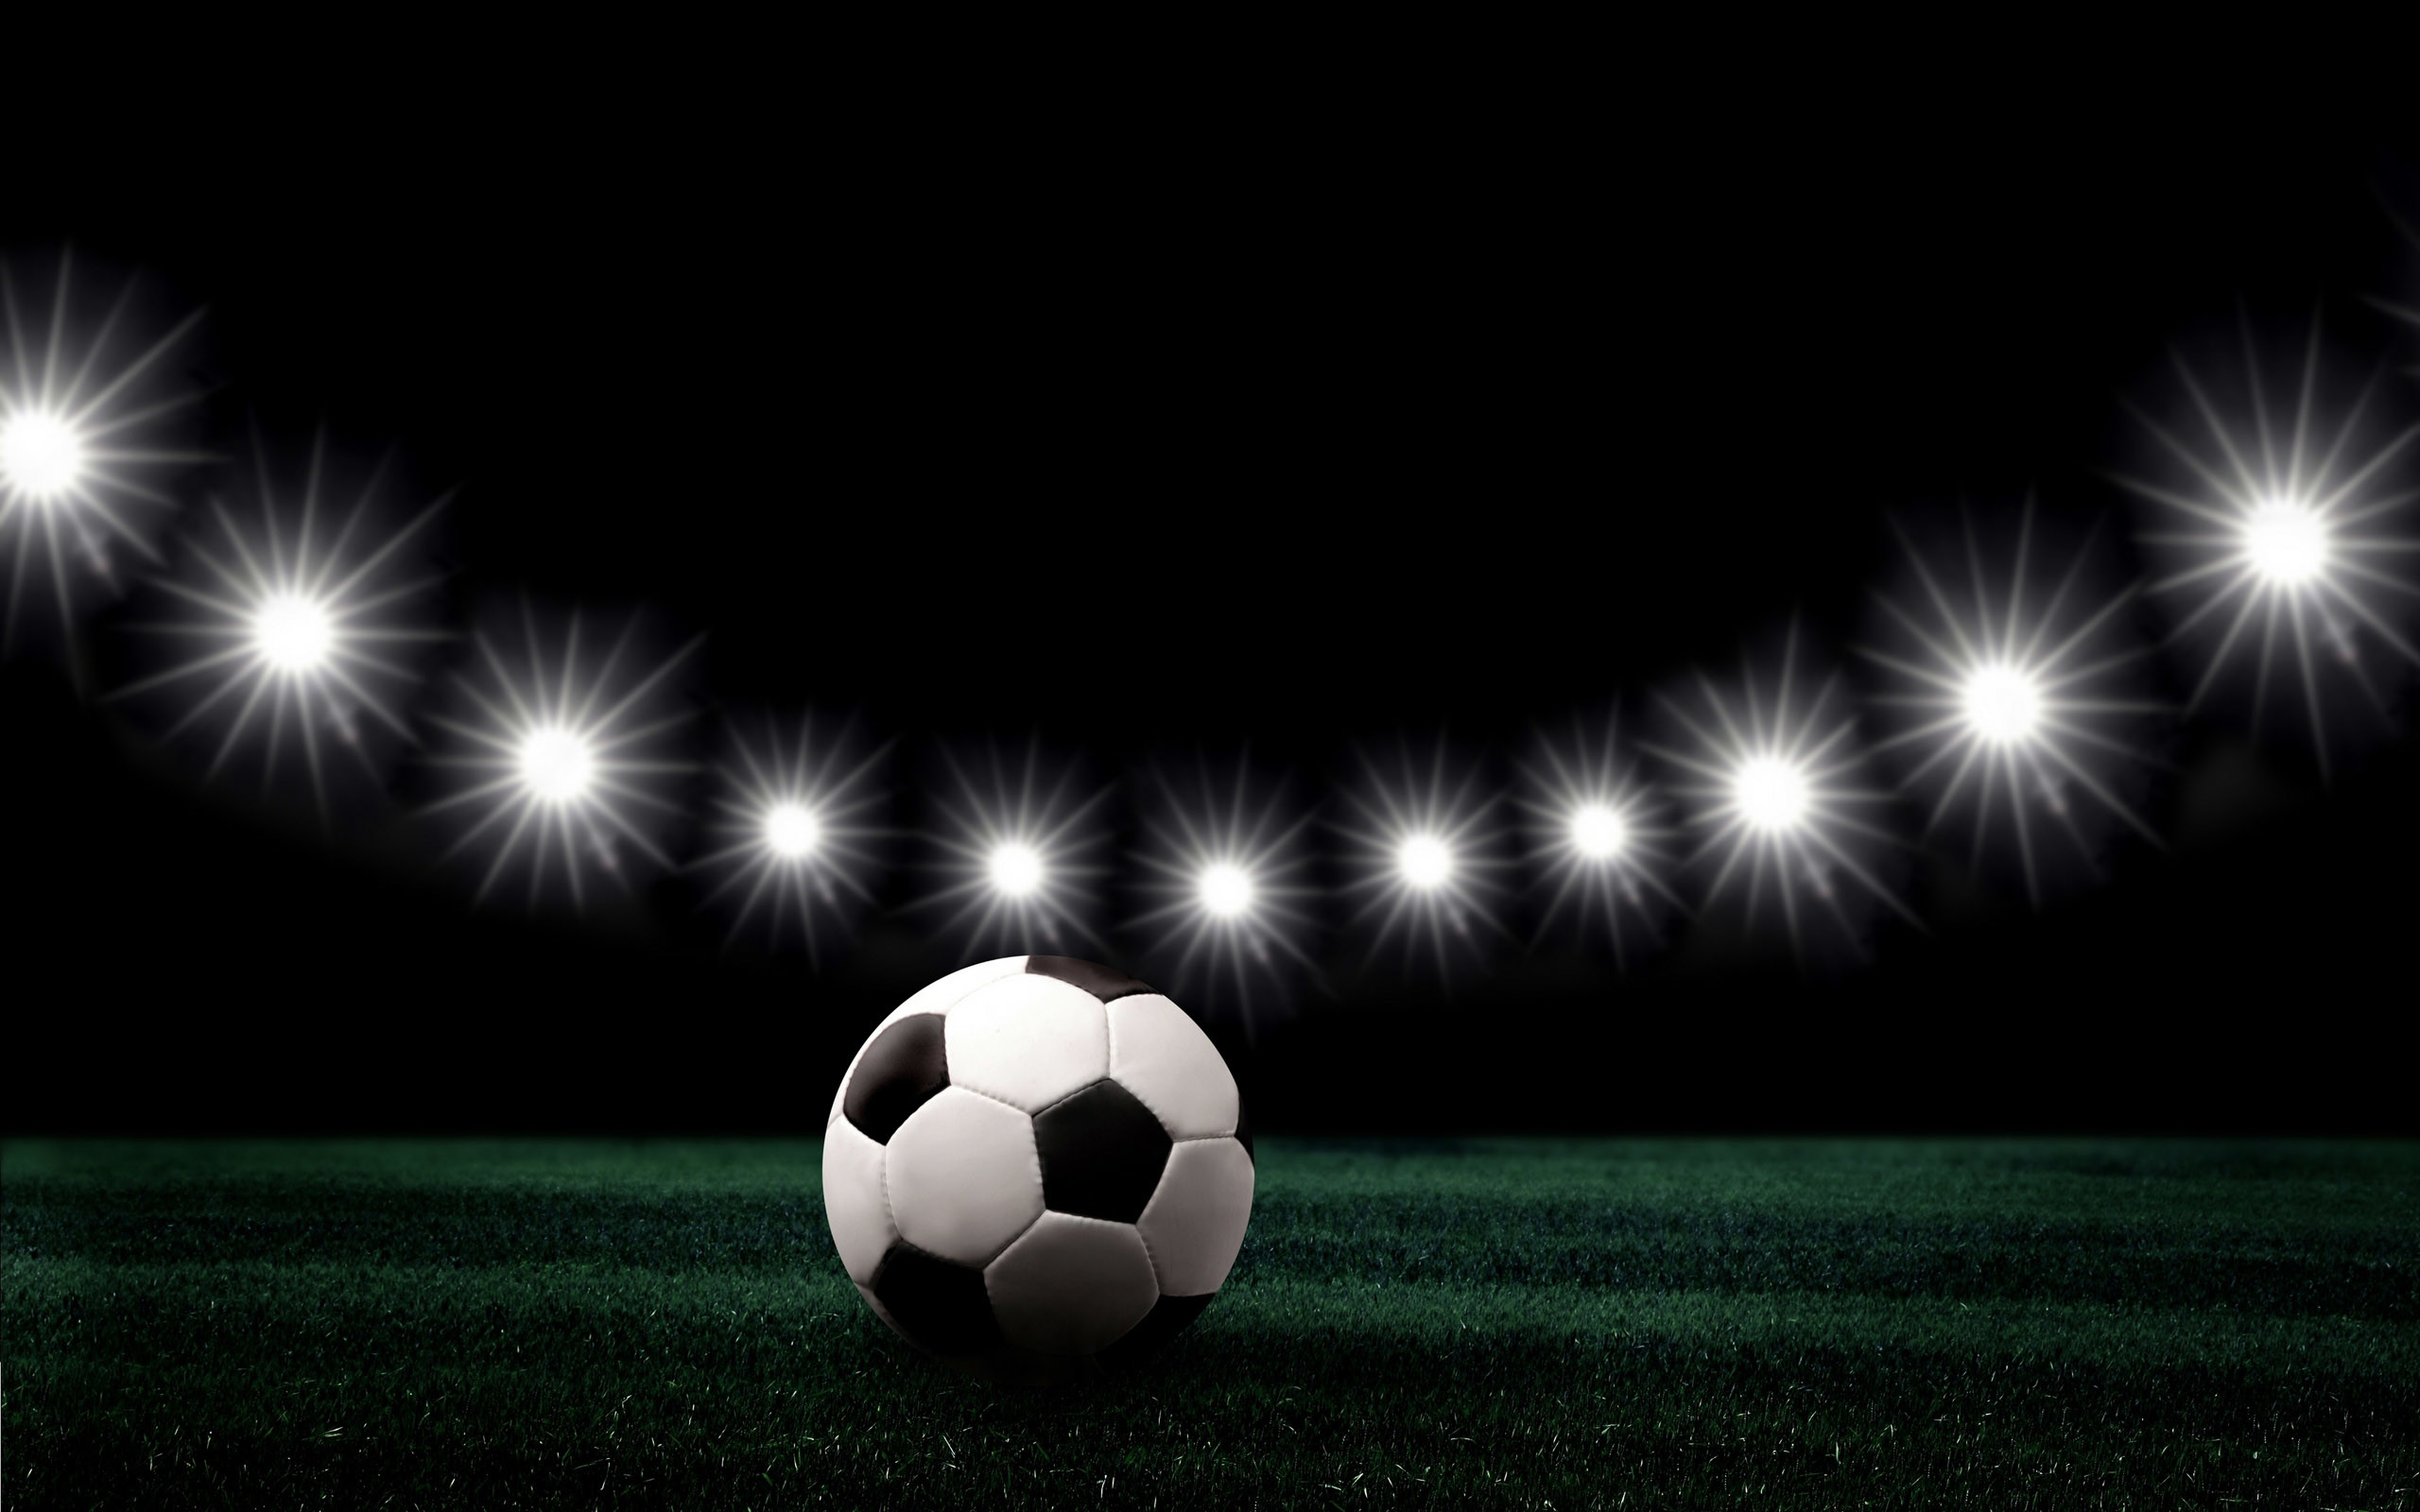 Res: 2560x1600, Best Fifa Wallpapers in High Quality, Orville Blum, 362.35 Kb